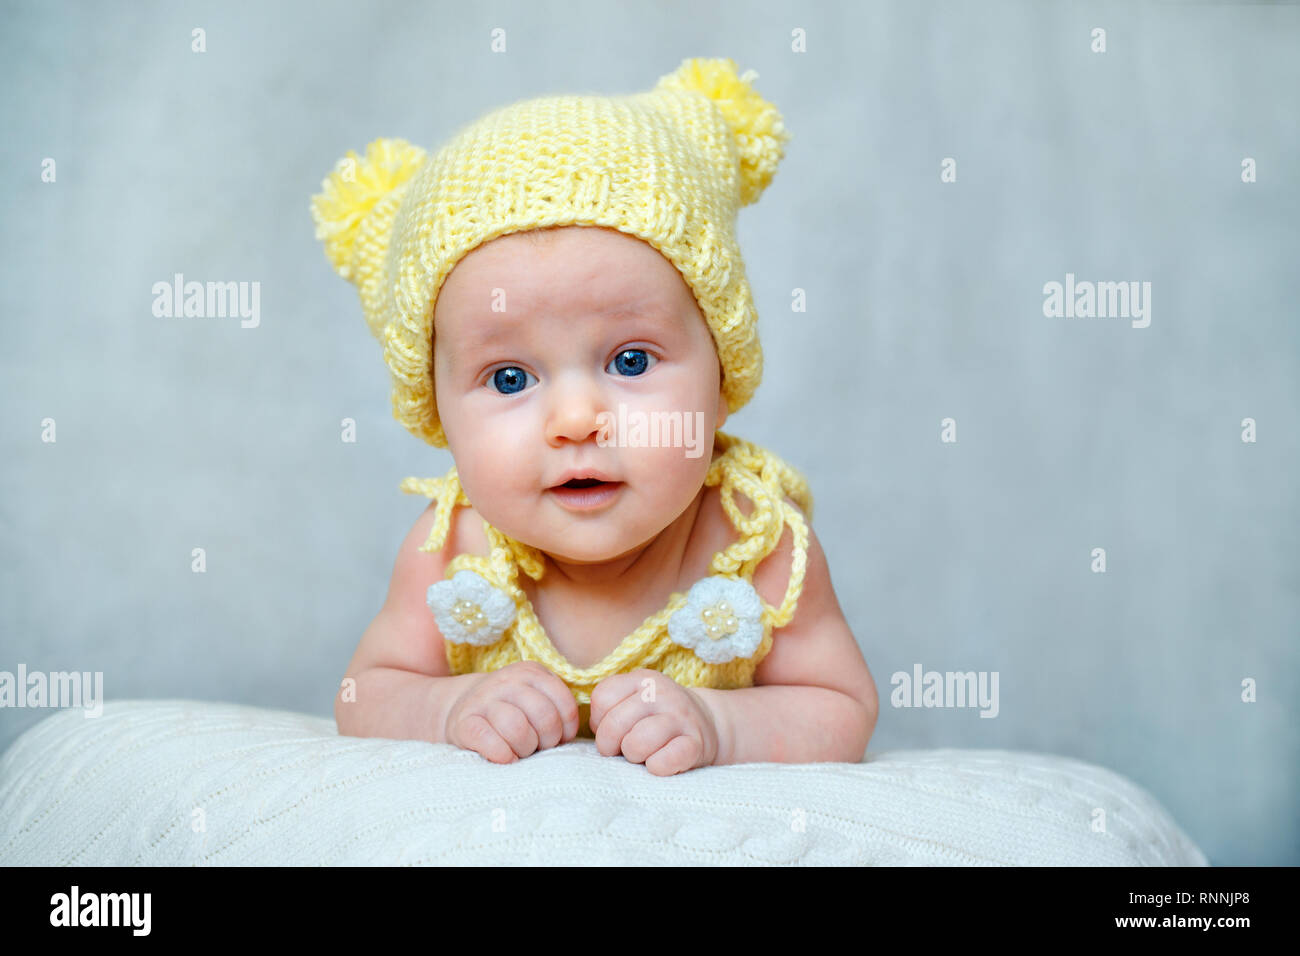 5f49c928a362 Portrait of a cute newborn baby girl in yellow knitted hat Stock ...